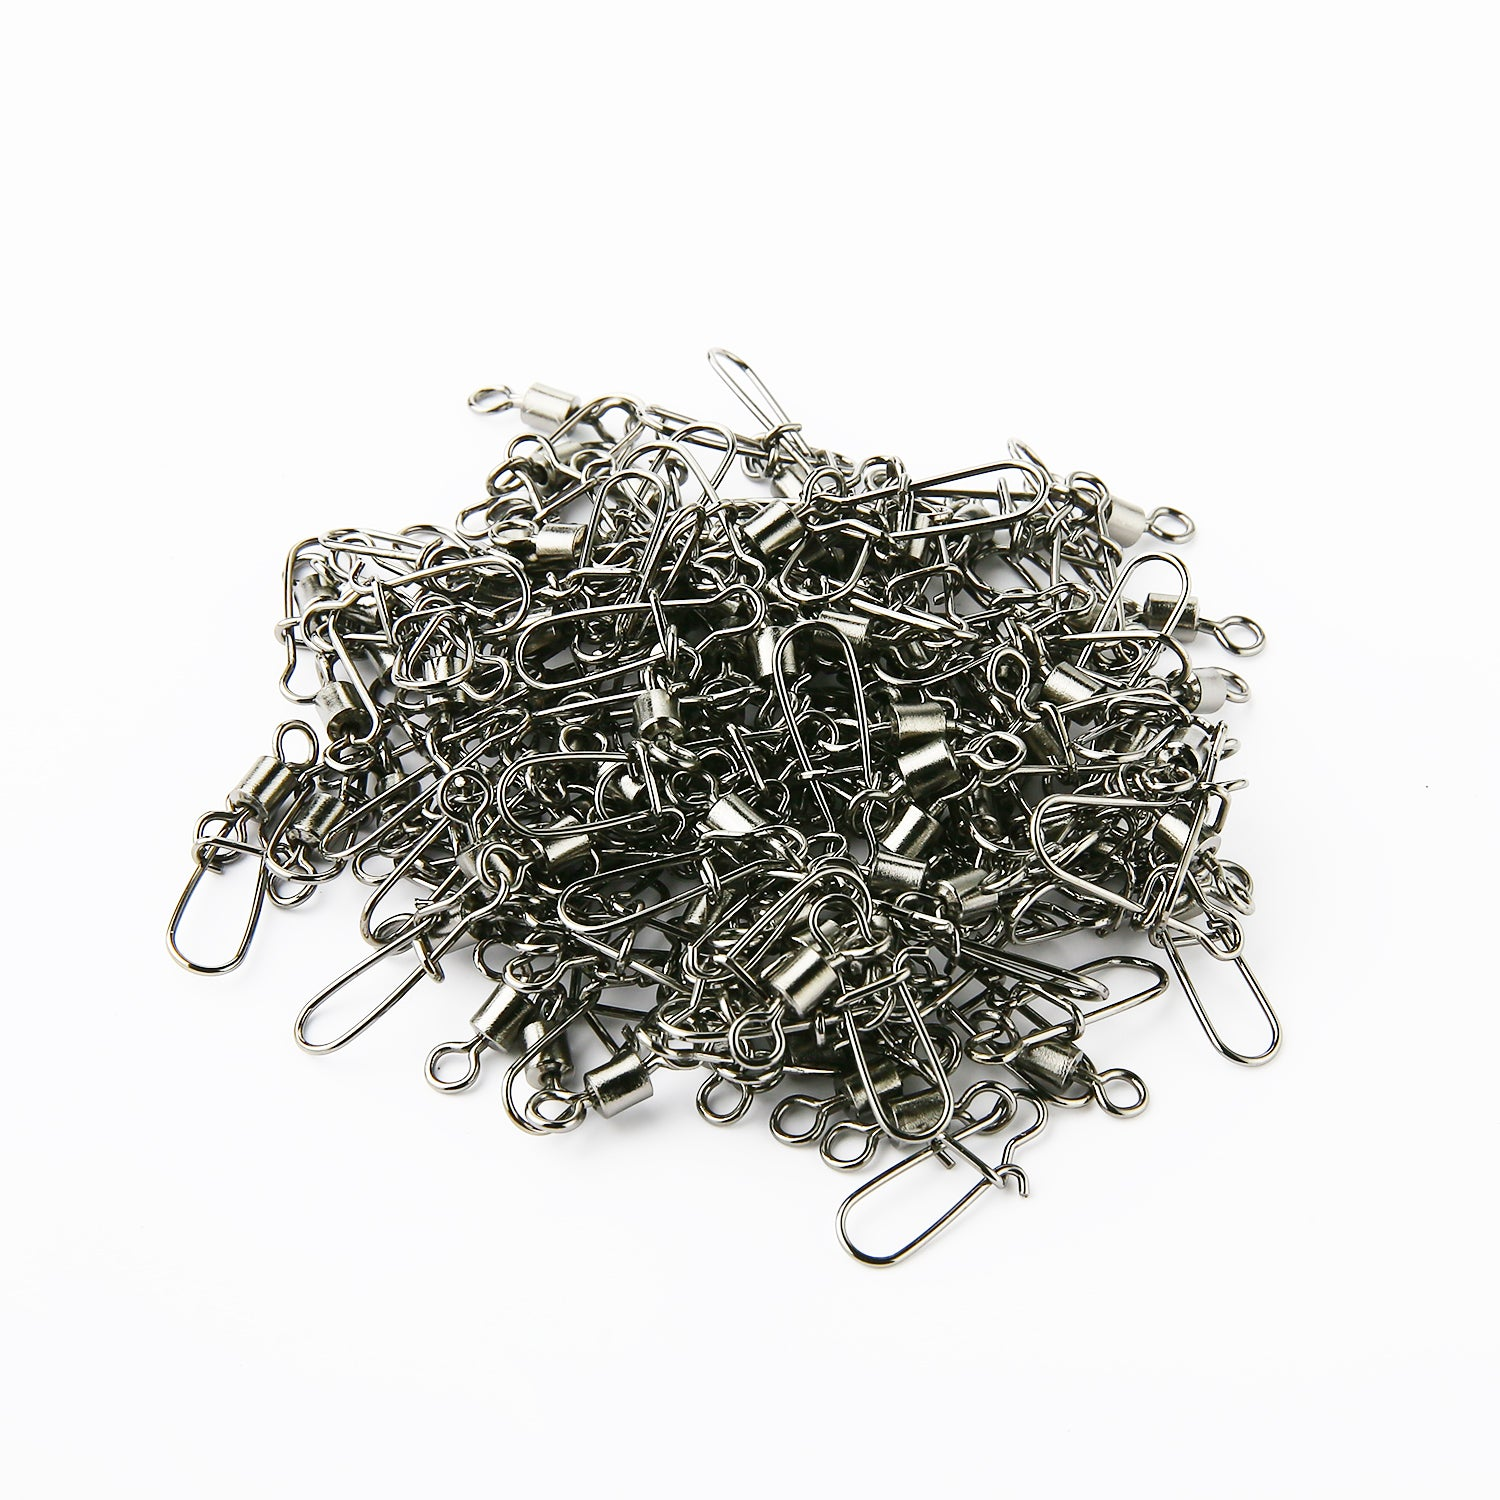 100PCS 2# 3# 4# 6# 8# 10# Fishing Connector Pin Bearing Rolling Swivel Stainless Steel with Snap Fishhook Lure Tackle Accessorie